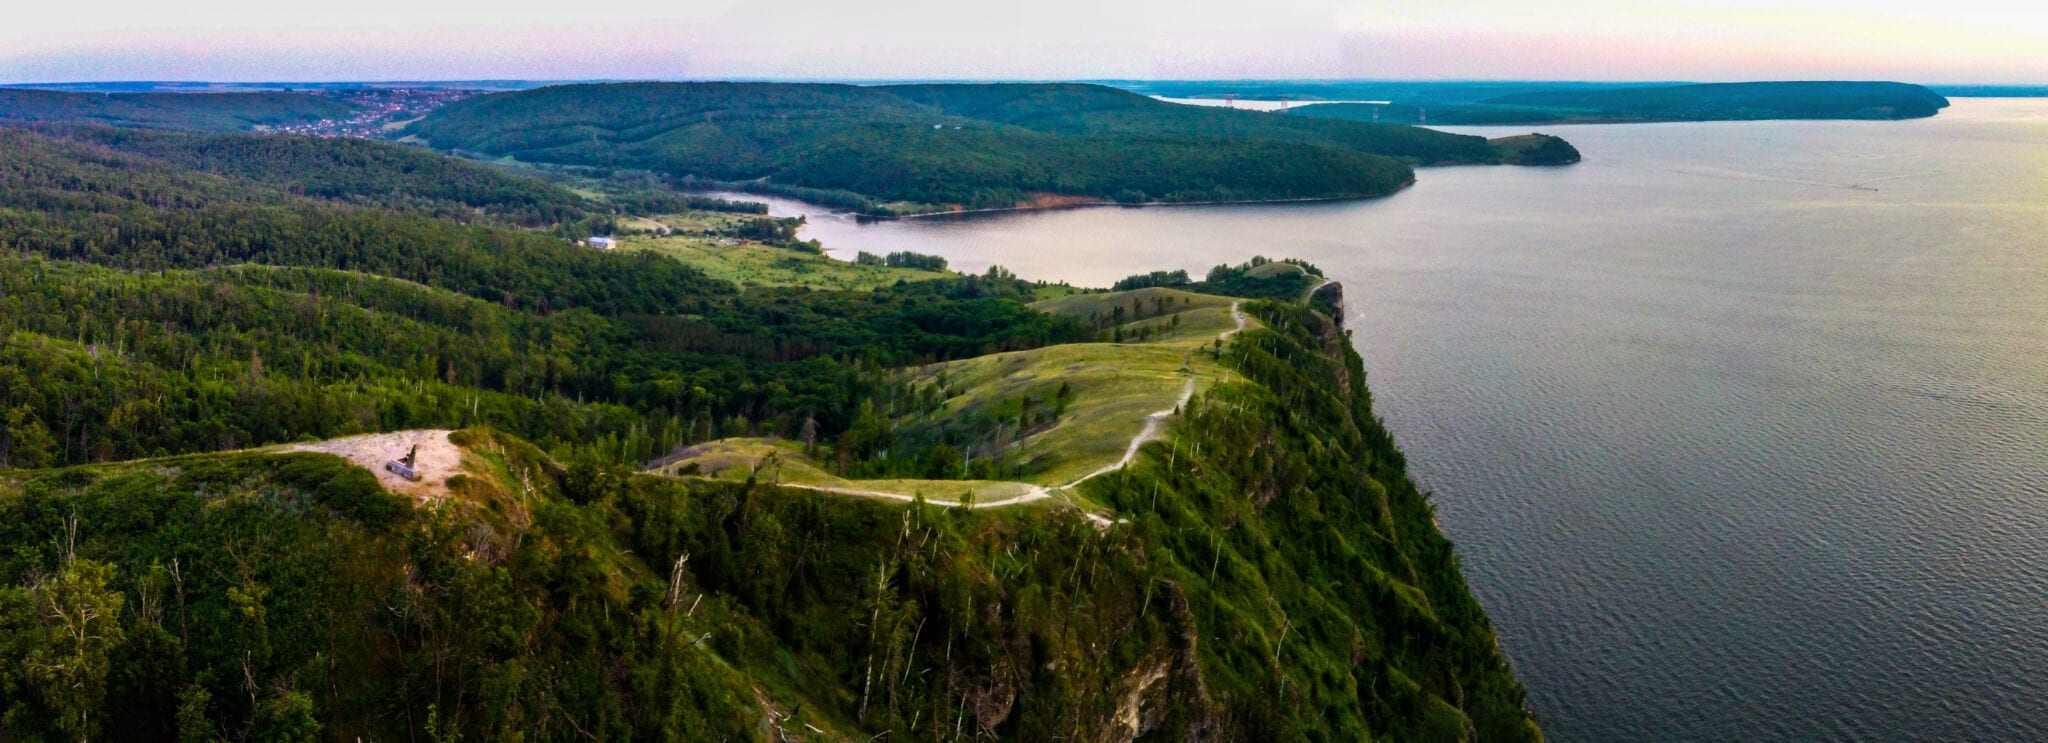 Wide angle view of the Volga River from the Zhiguli Mountains